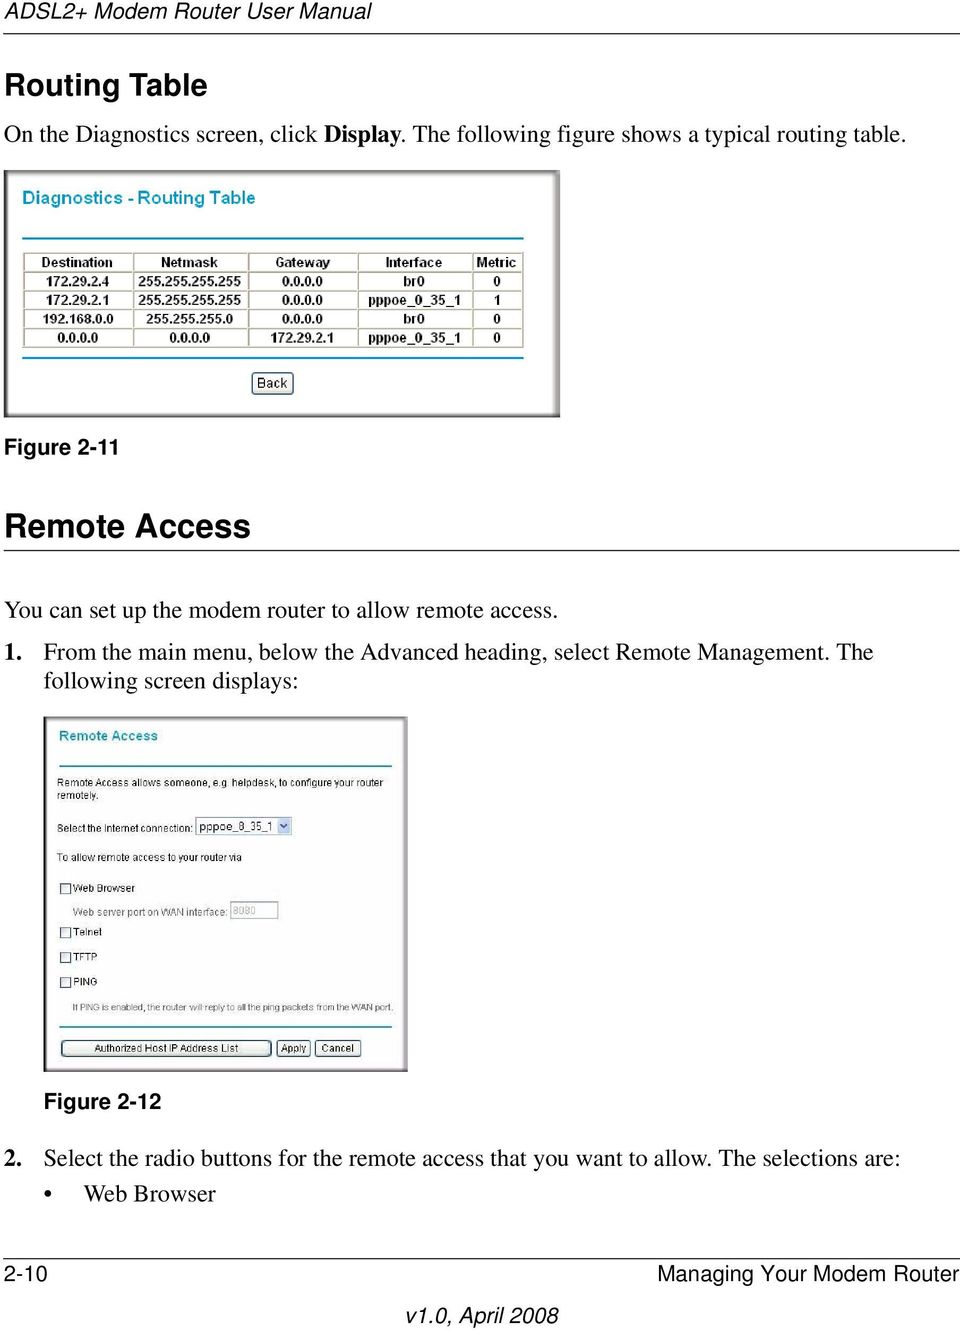 From the main menu, below the Advanced heading, select Remote Management.